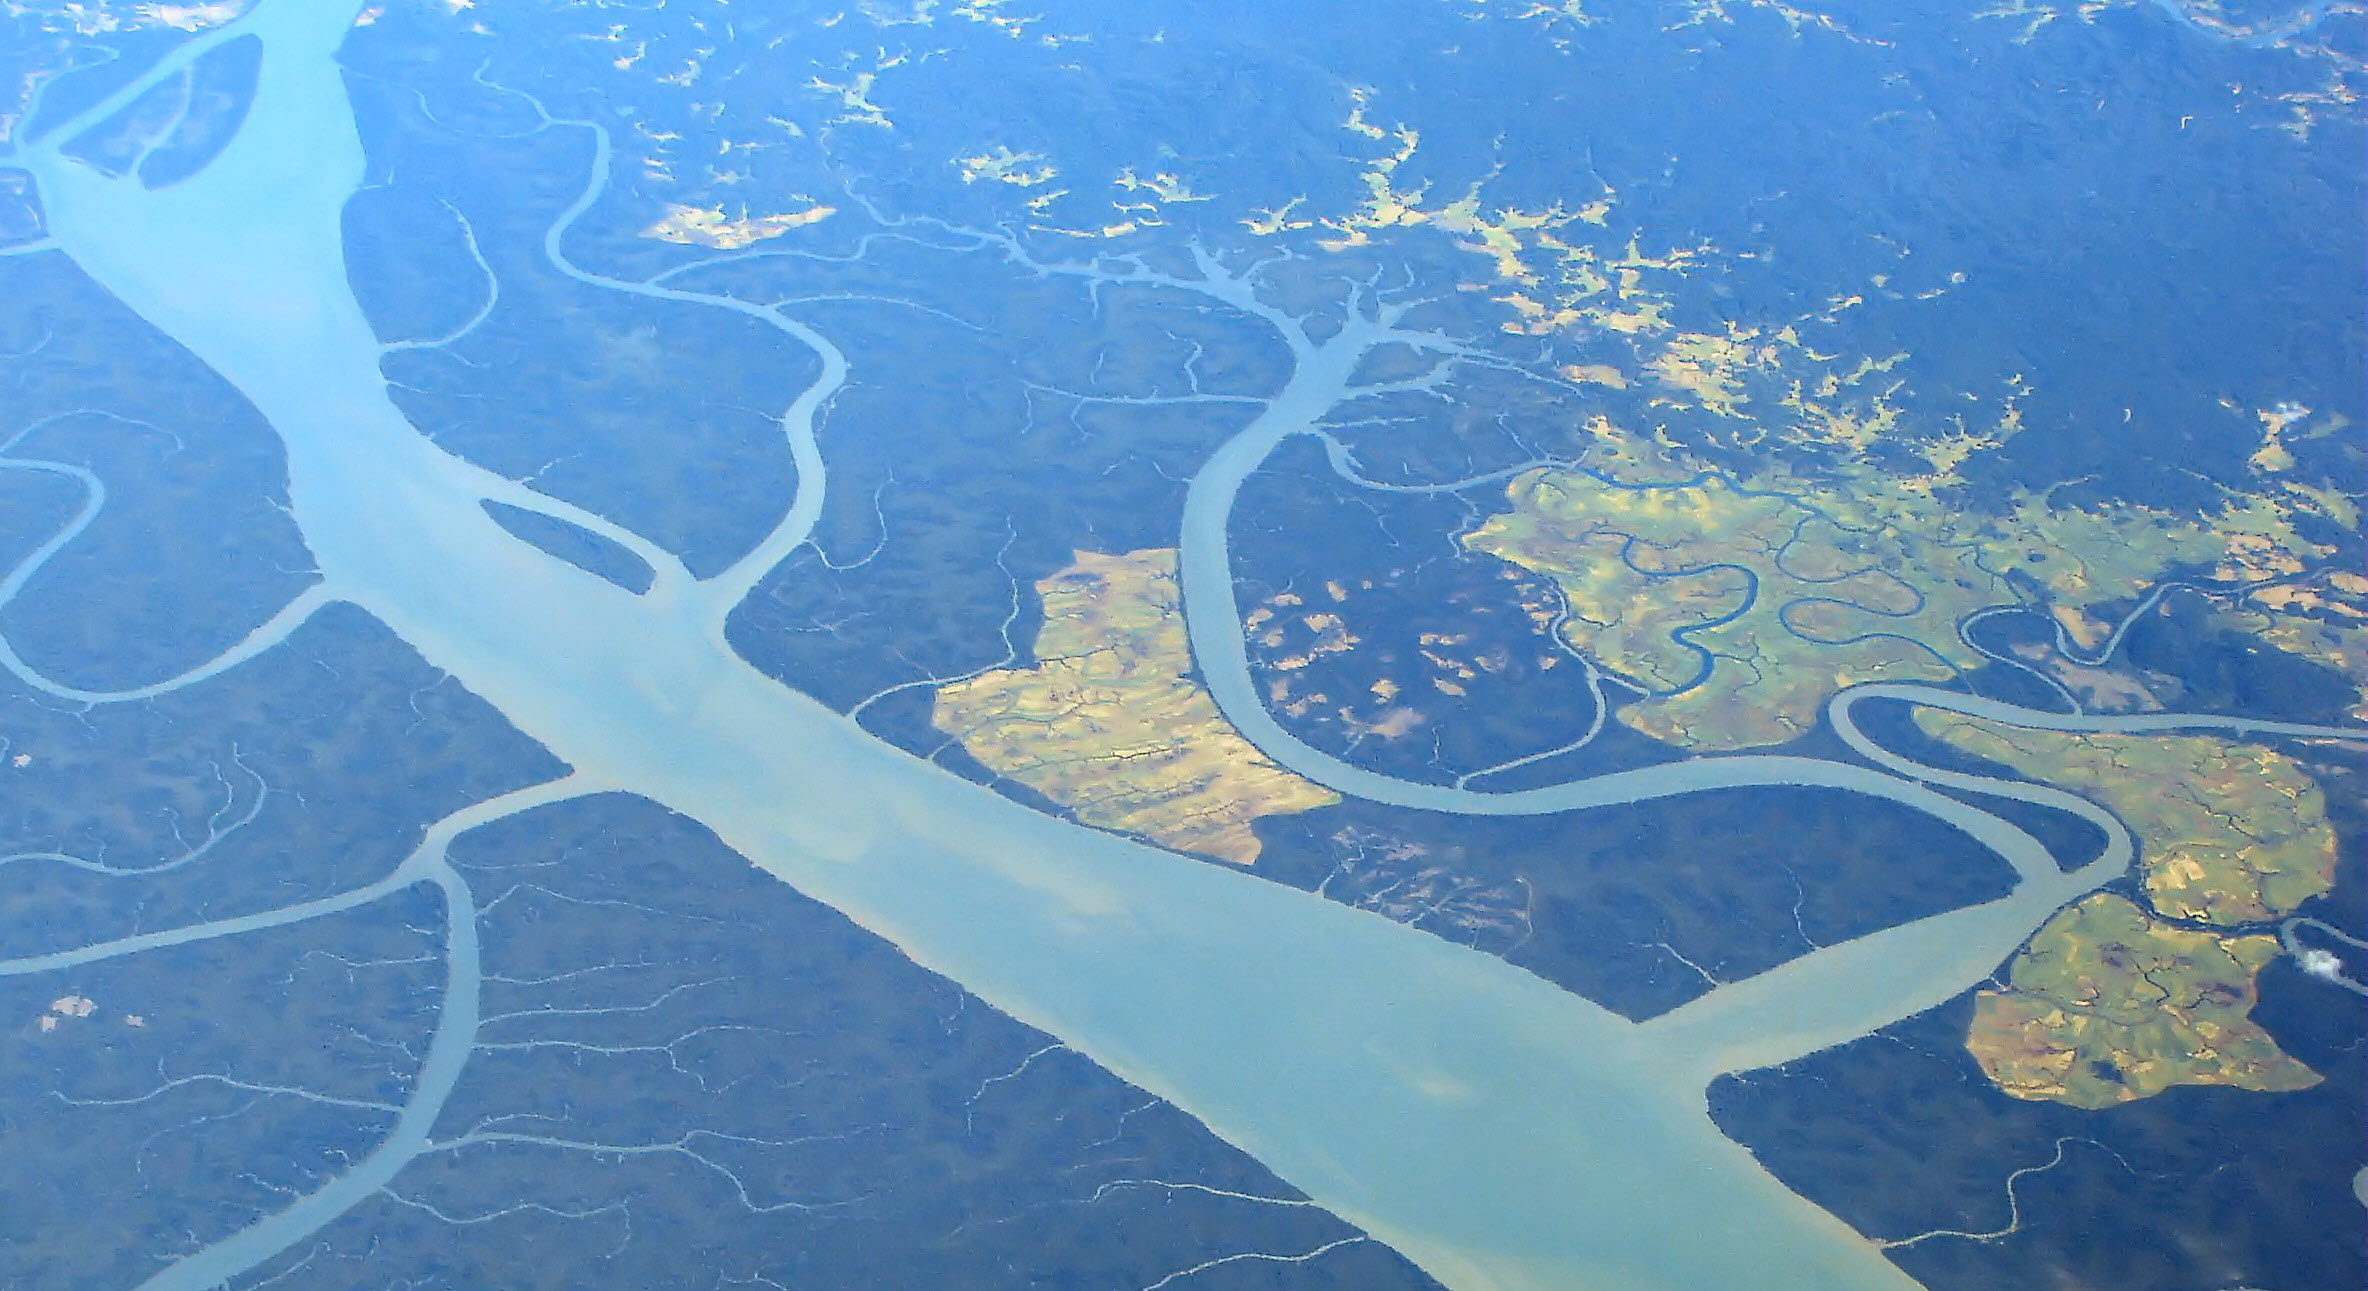 Irrawaddy River in Myanmar